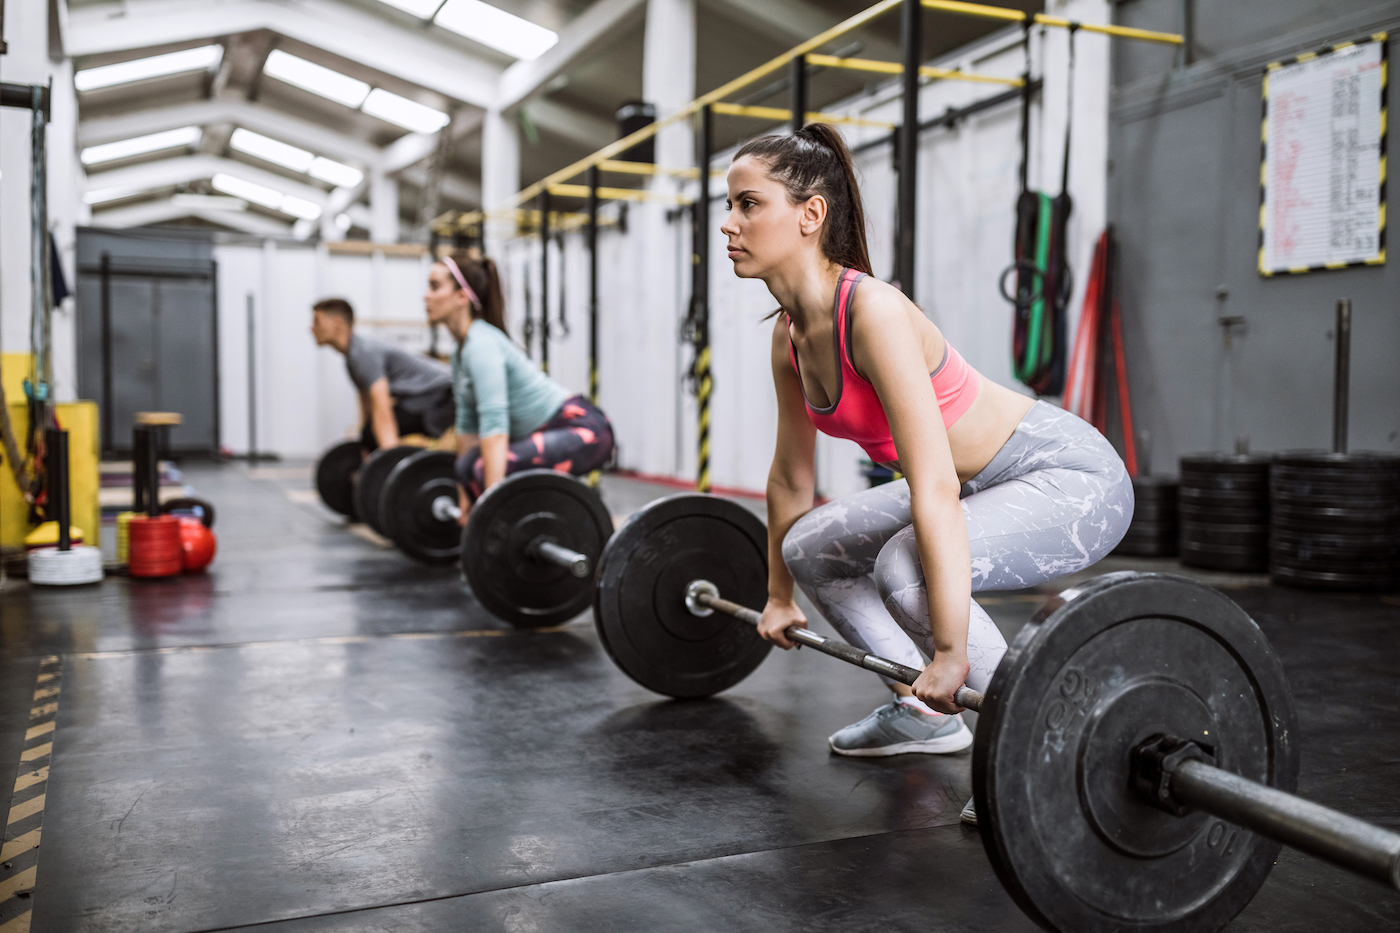 Thumbnail for Why you don't want to become a 'butt-gripper' in your workouts